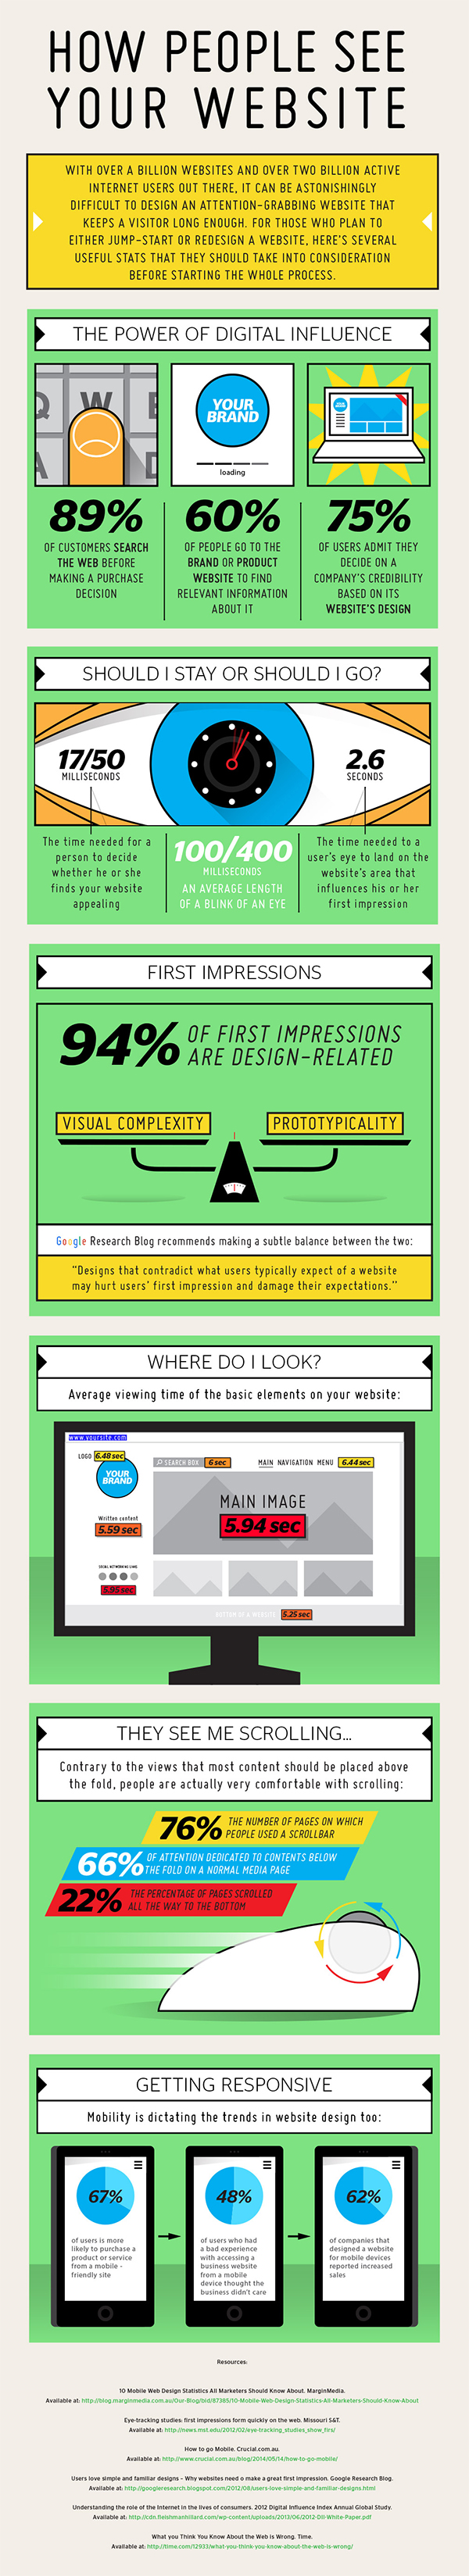 An infographic of 20 stats on website usage